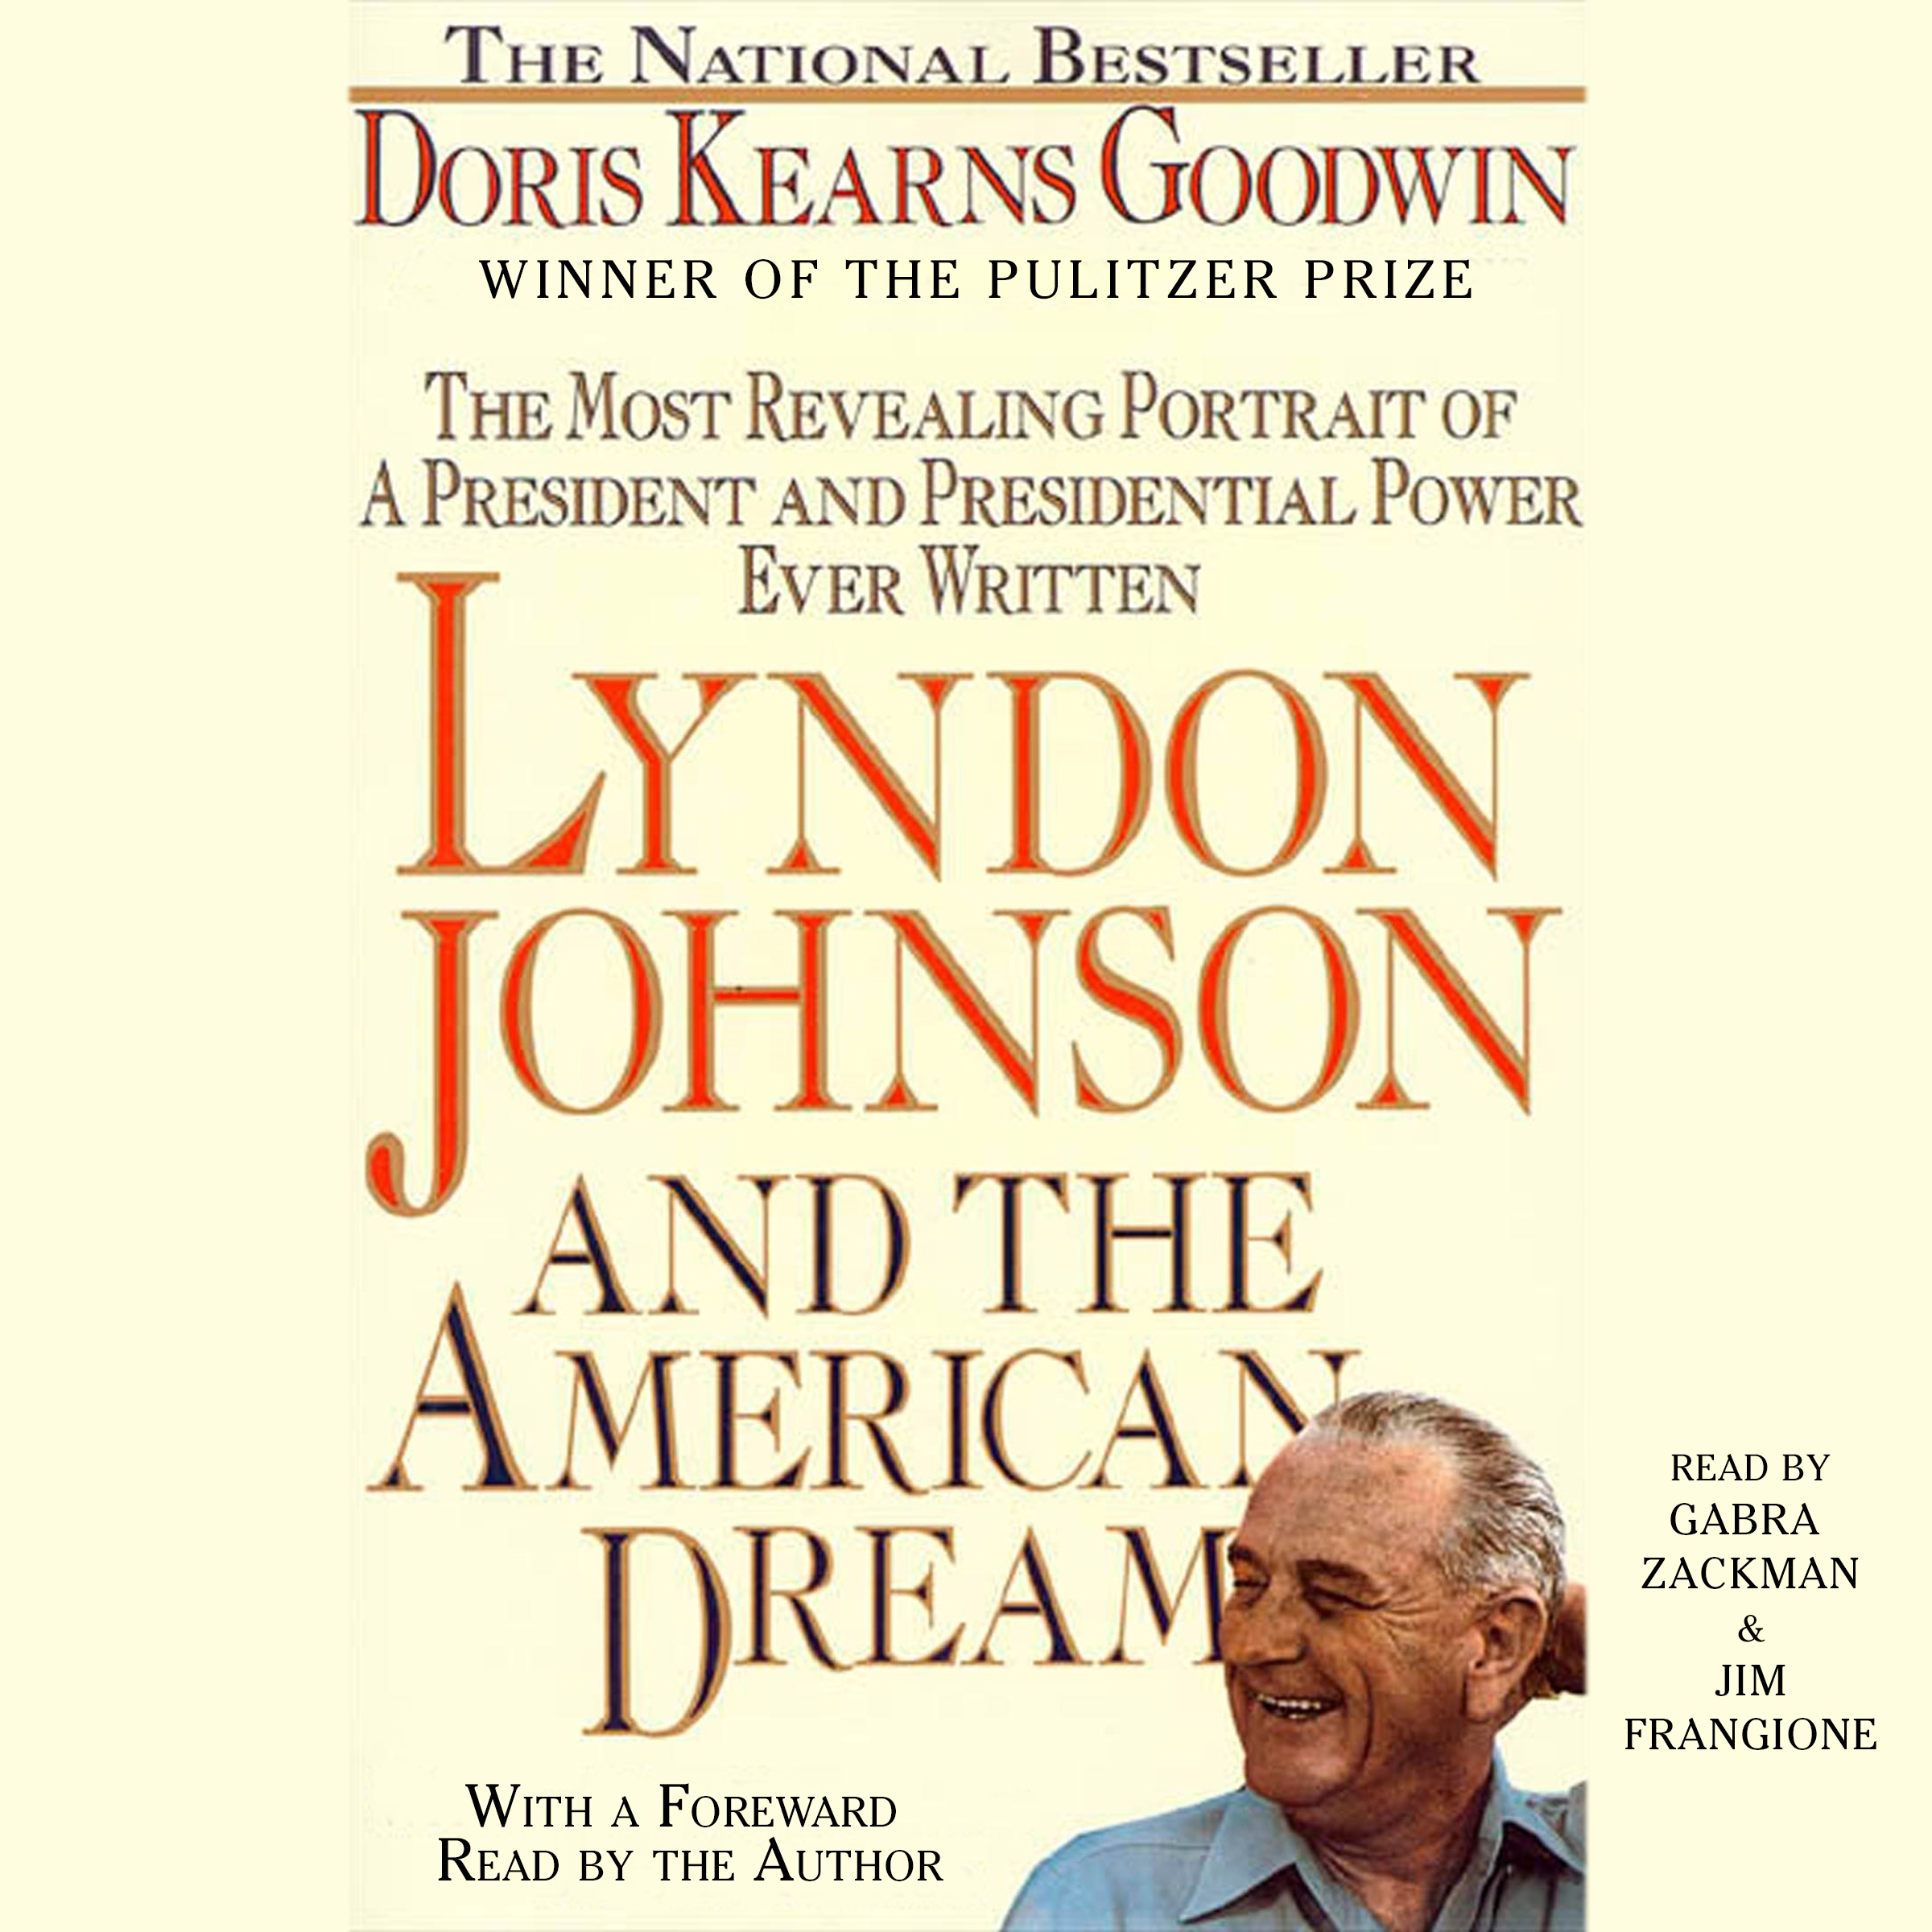 Lyndon johnson and the american dream 9781508217831 hr